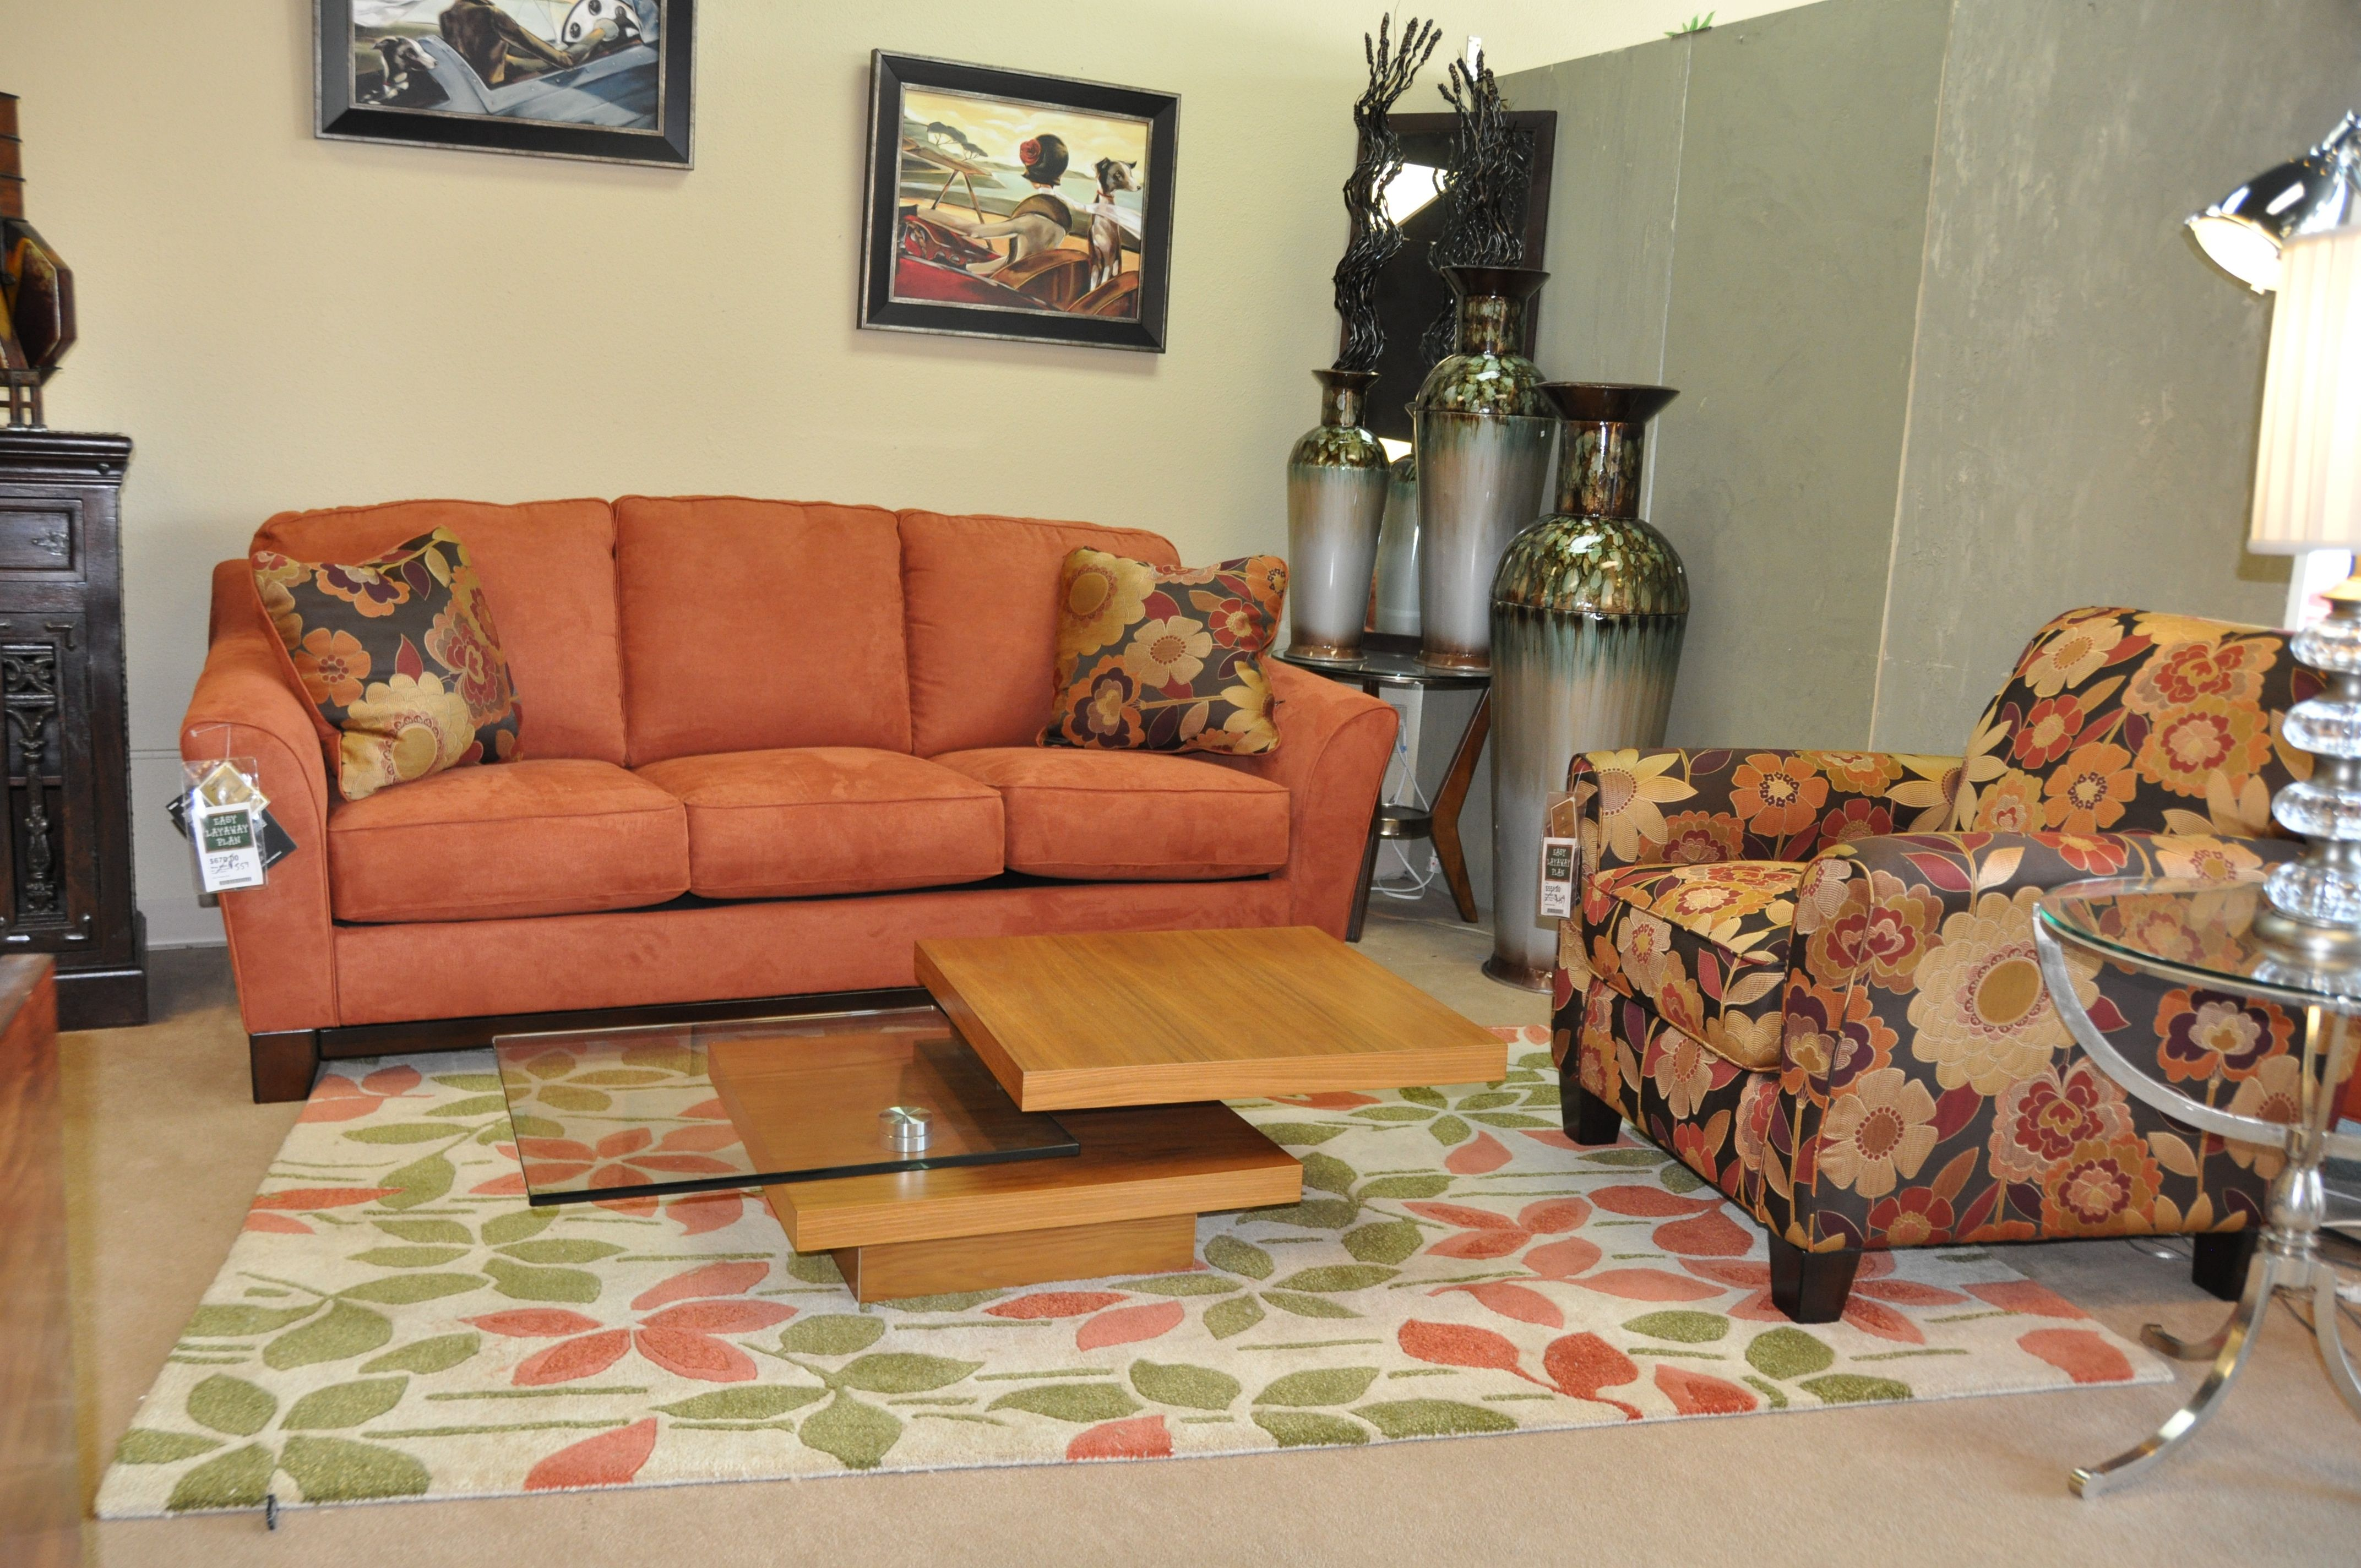 Living Room Sets Sacramento Ca tangerine is the new color of 2013. this living room set is on